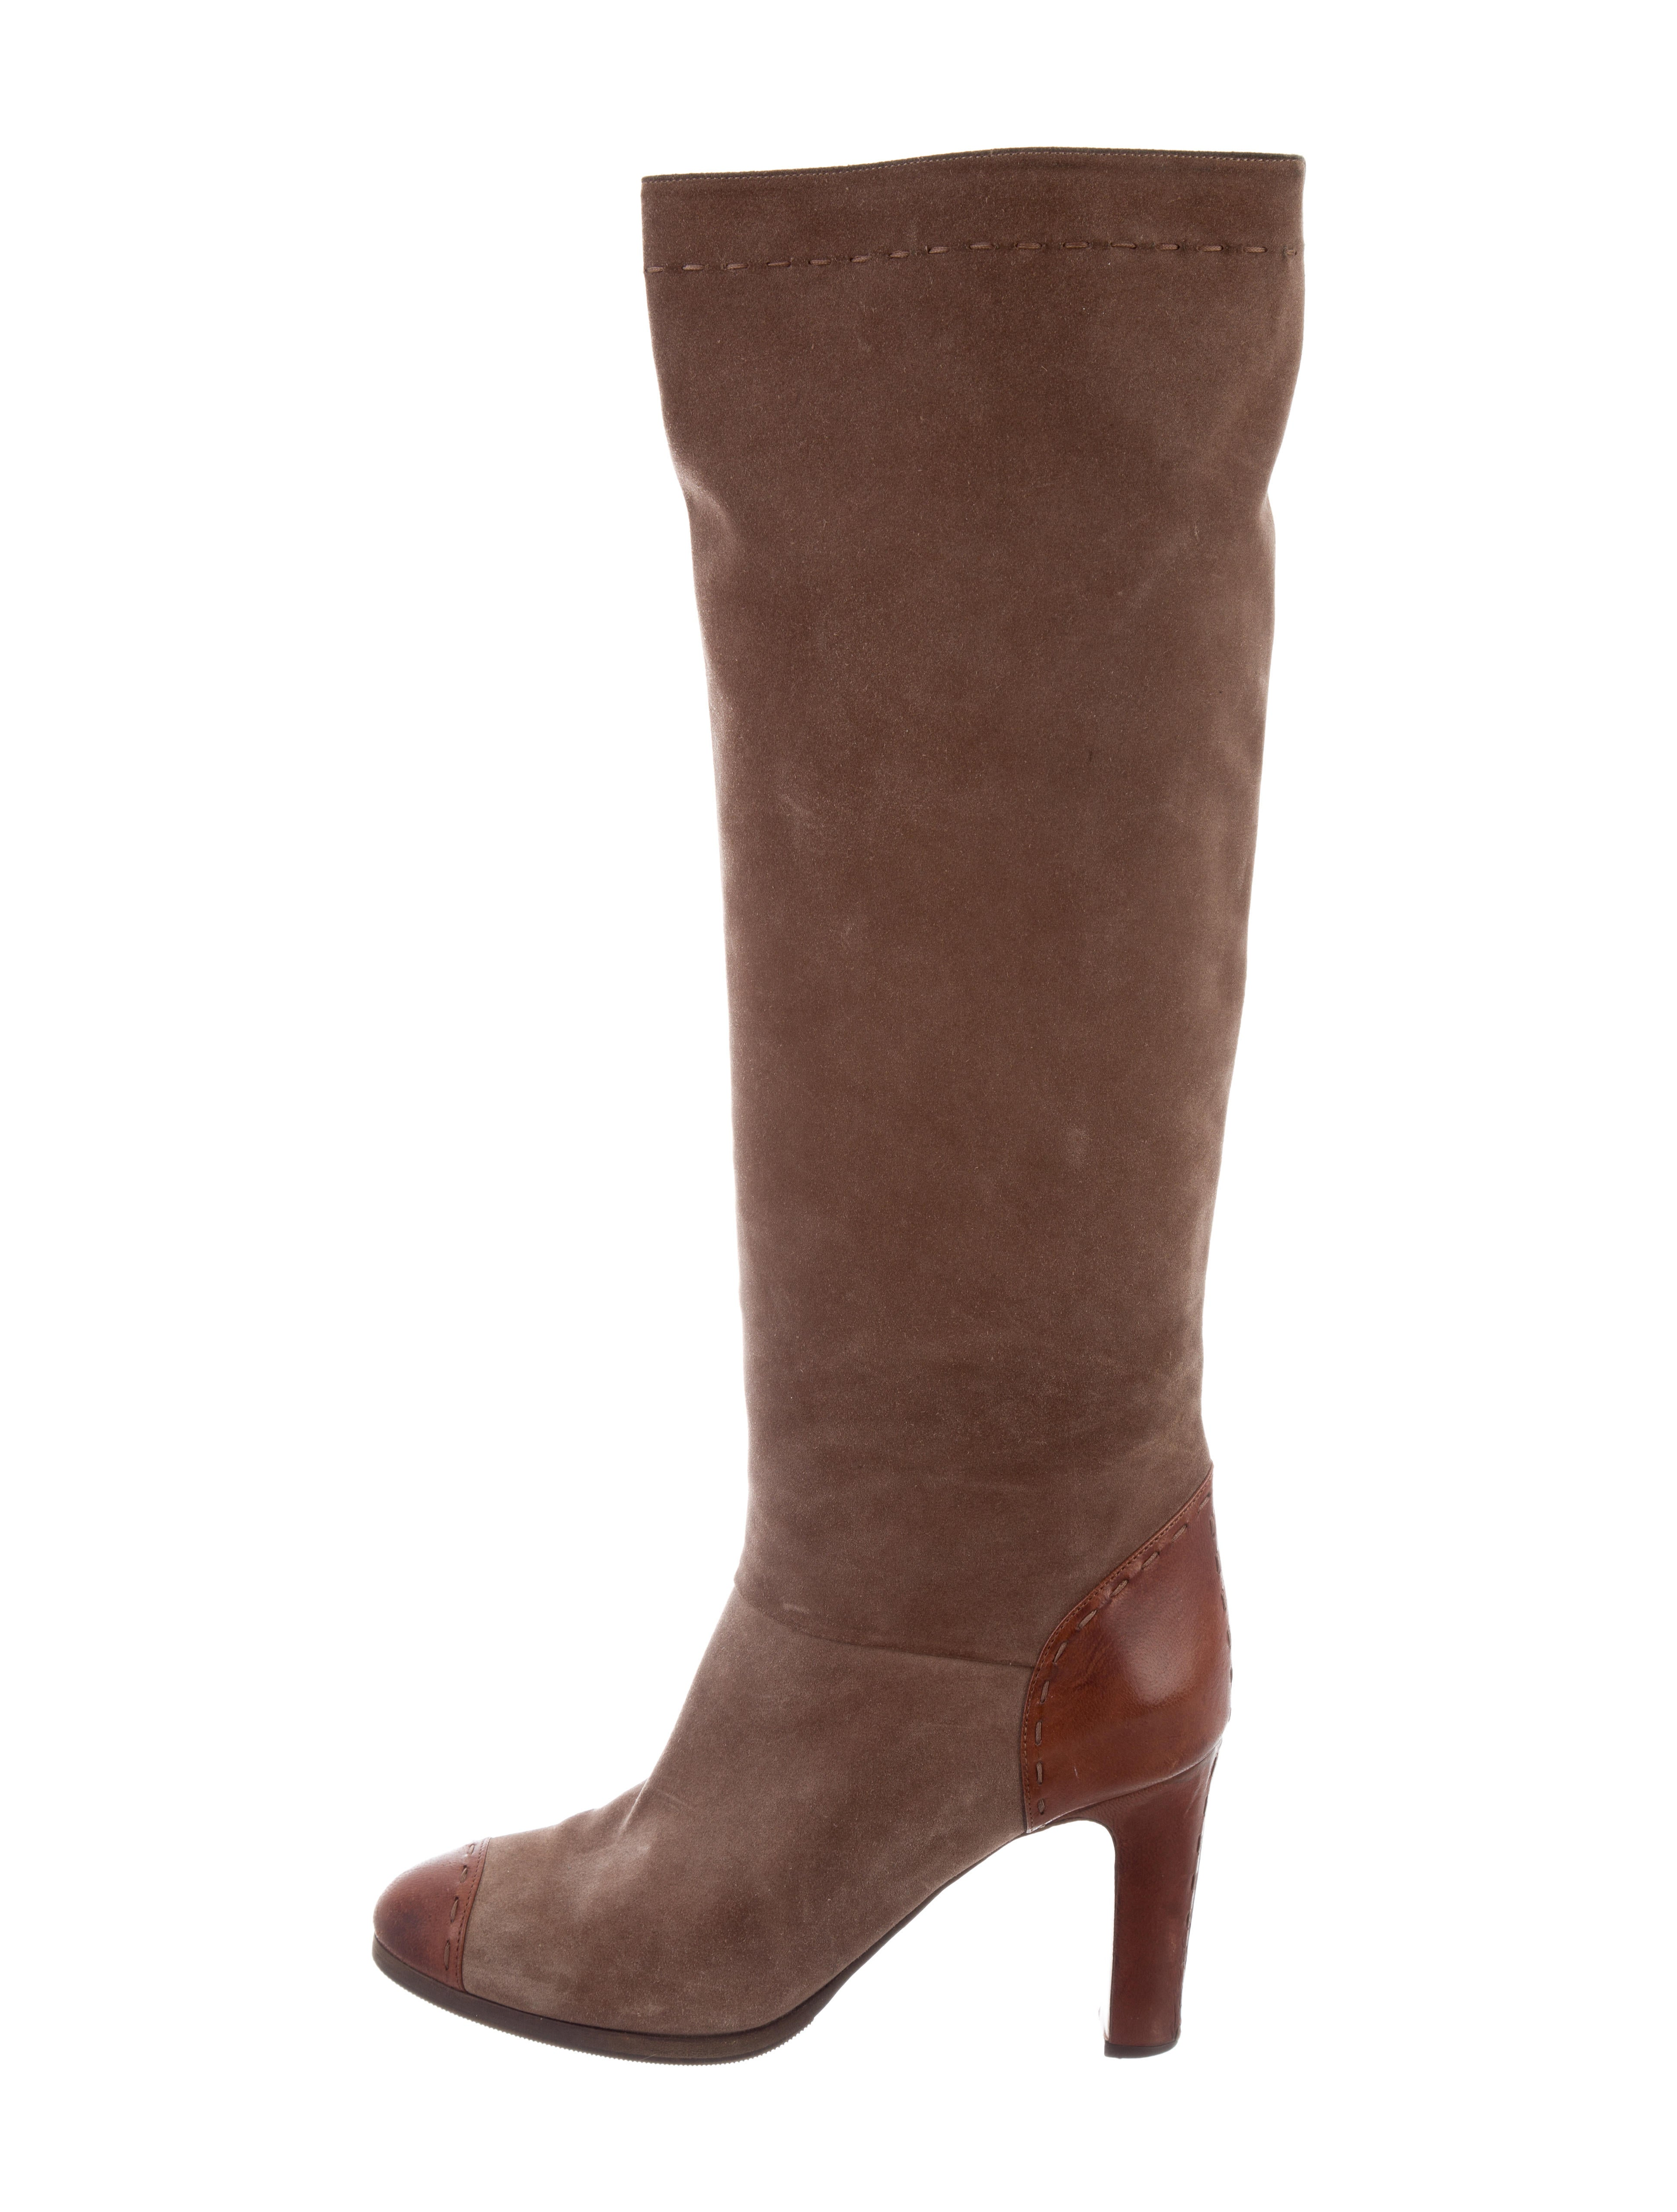 cheap sale tumblr Chloé Cap-Toe Knee-High Boots discount low cost clearance clearance KYjnC